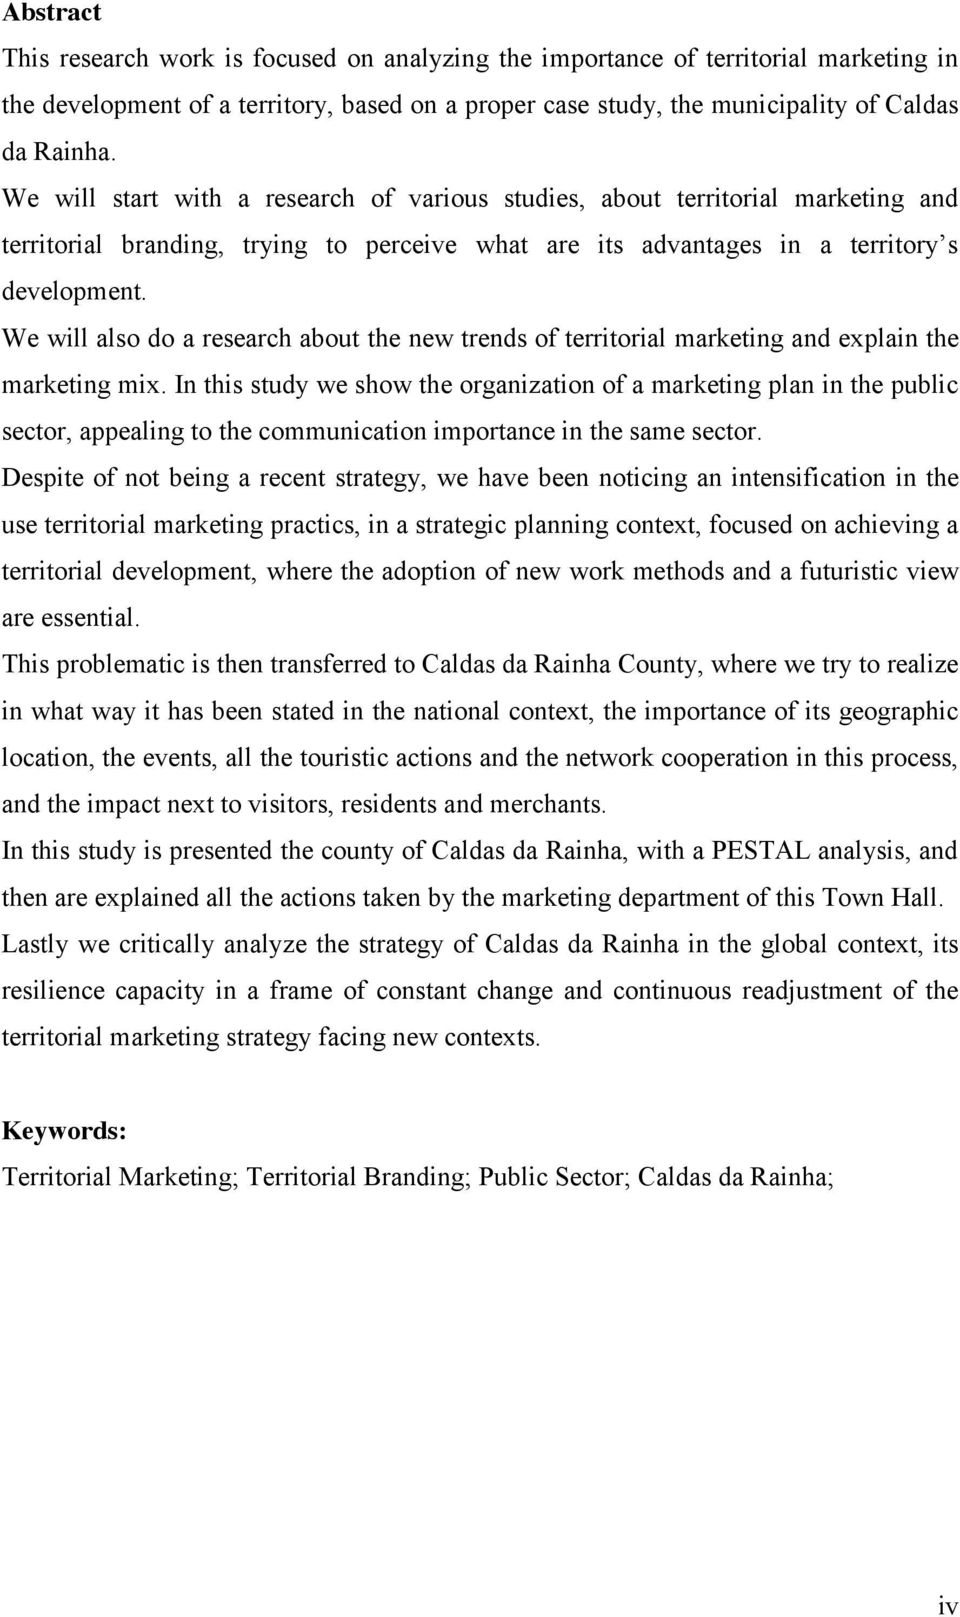 We will also do a research about the new trends of territorial marketing and explain the marketing mix.